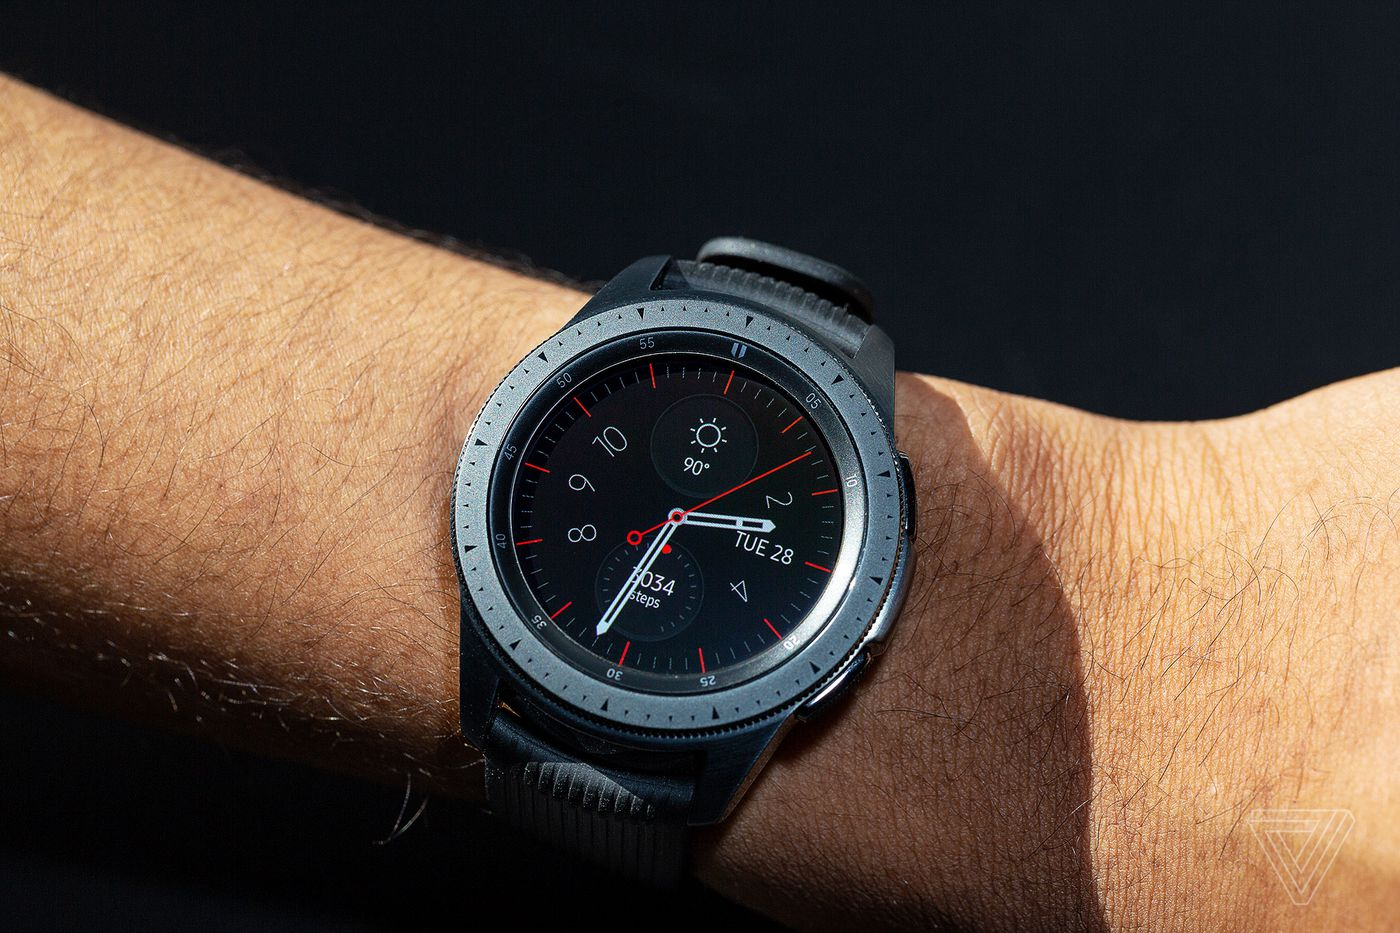 Samsung Galaxy Watch review: iteration over innovation - The